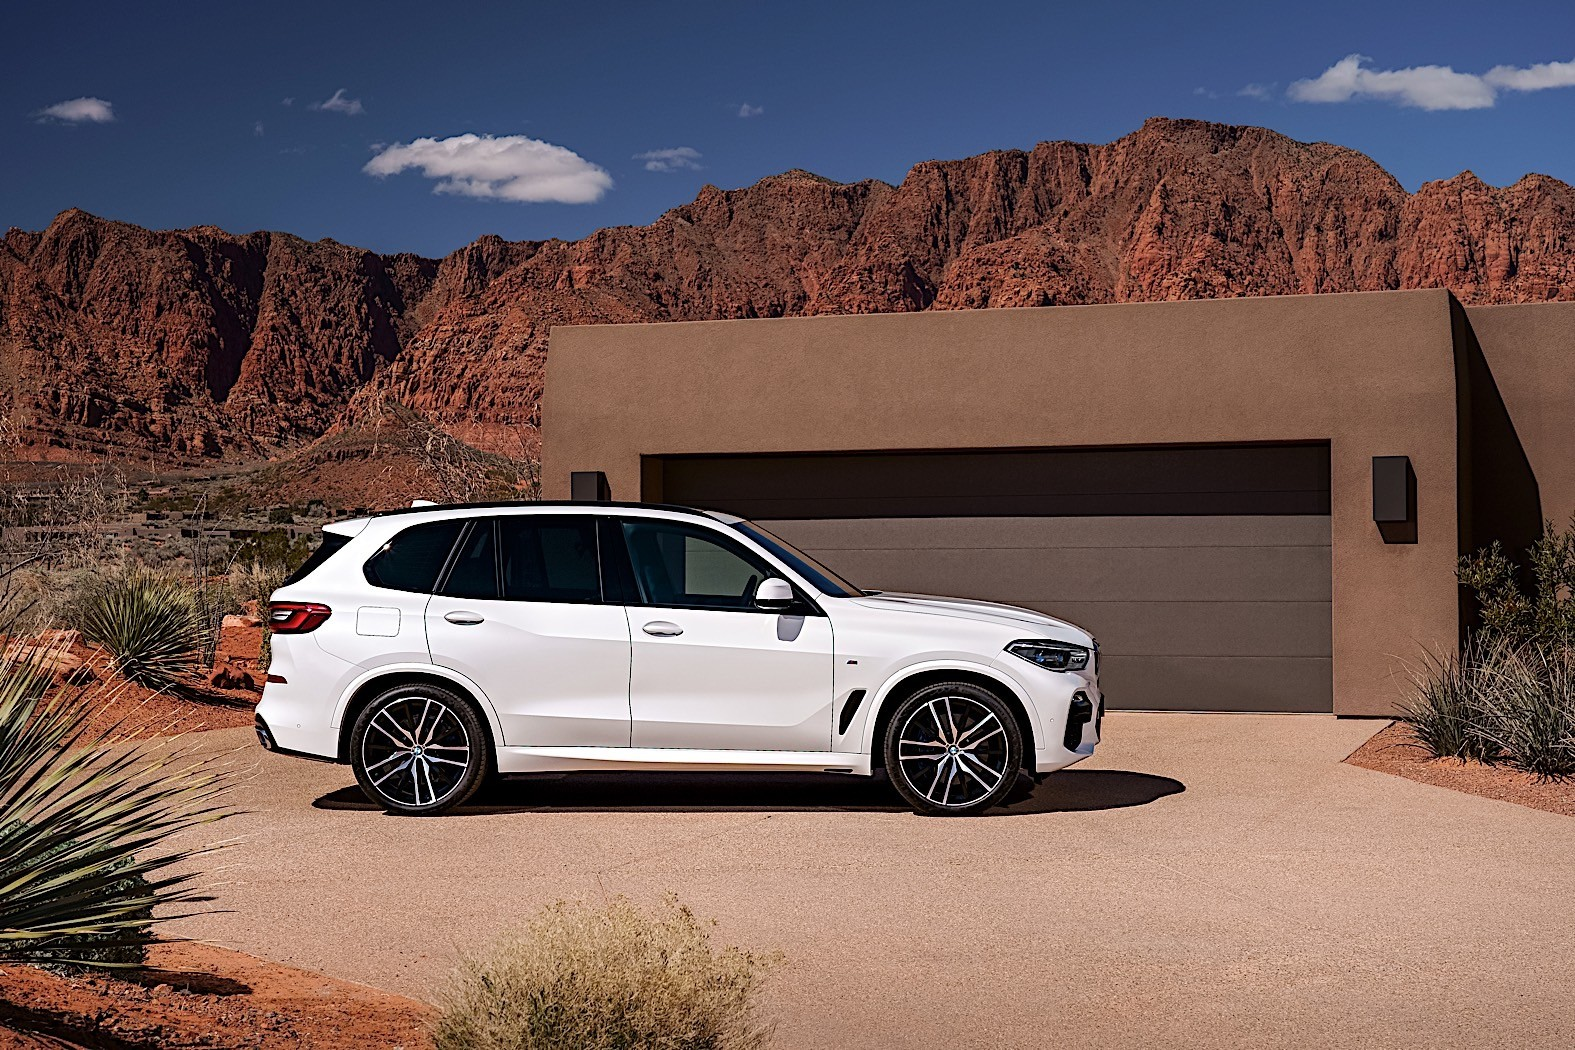 2019 BMW X5 Breaks Cover as Bigger, Meaner SUV - autoevolution